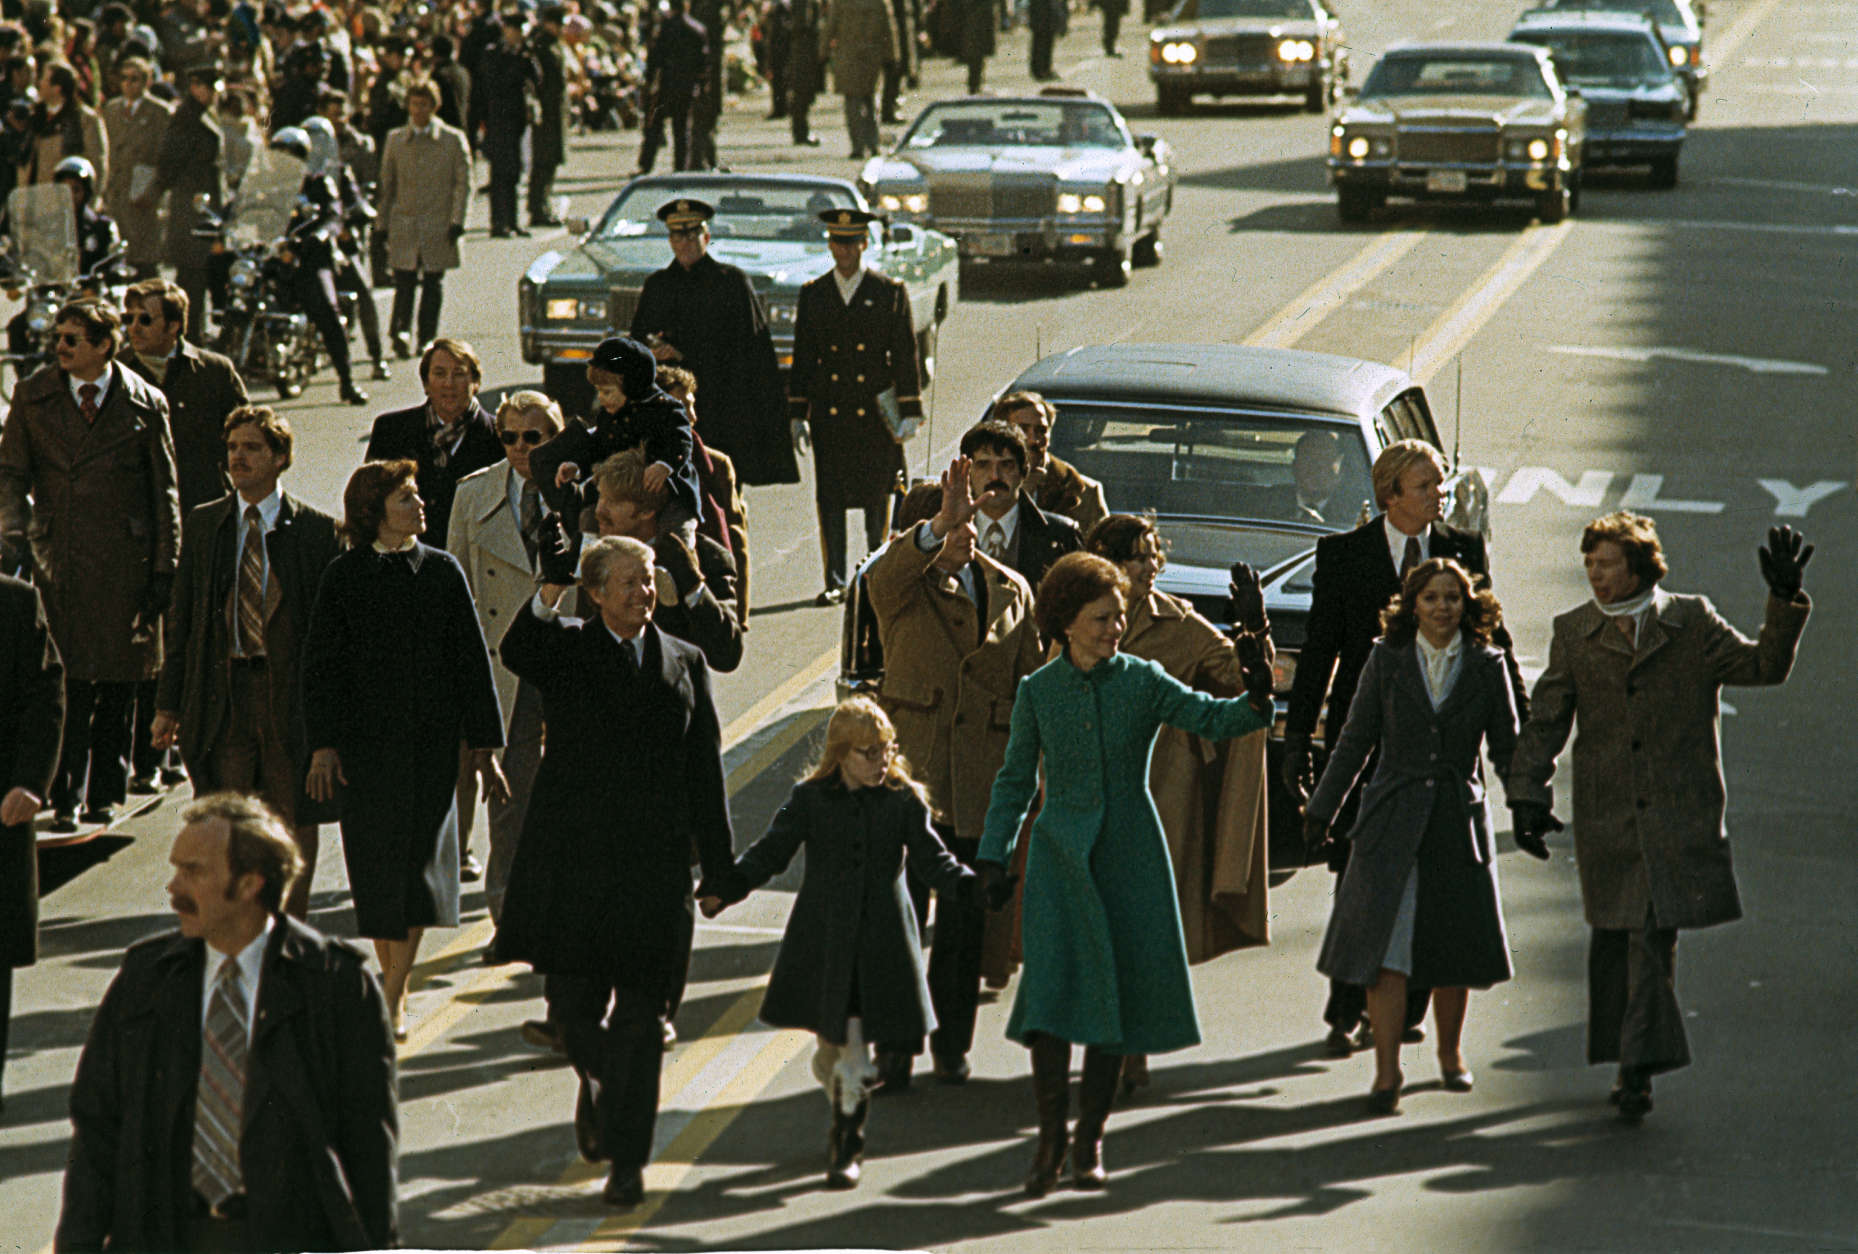 U.S. President Jimmy Carter, left, waving, first lady Rosalynn Carter hold hands with their daughter Amy as they take part in the inaugural parade in Washington, D.C., Jan. 20, 1977.   They are joined by other family members.  Carter was sworn in as the nation's 39th president during the inauguration ceremonies.  (AP Photo)